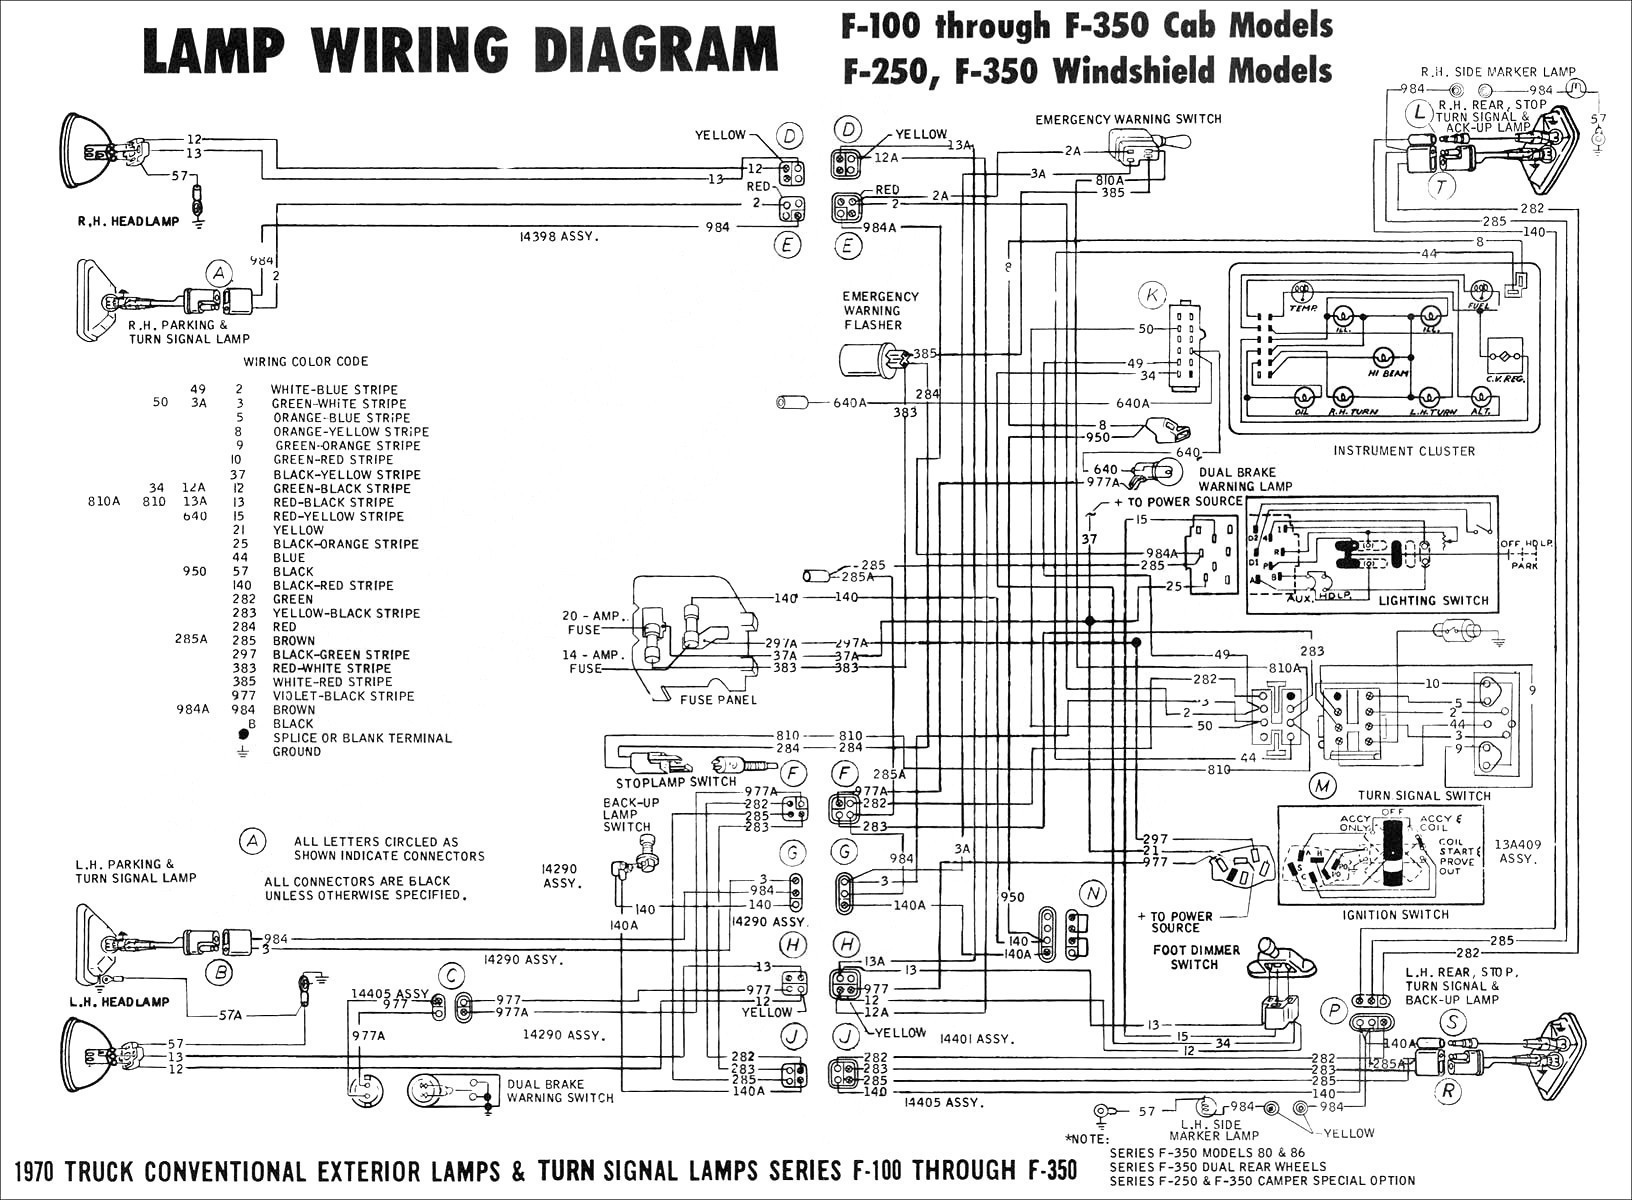 Toyota Rav4 Wiring Diagrams Diagram Libraries Fj Cruiser Engine 1996 Third Level2000 Simple